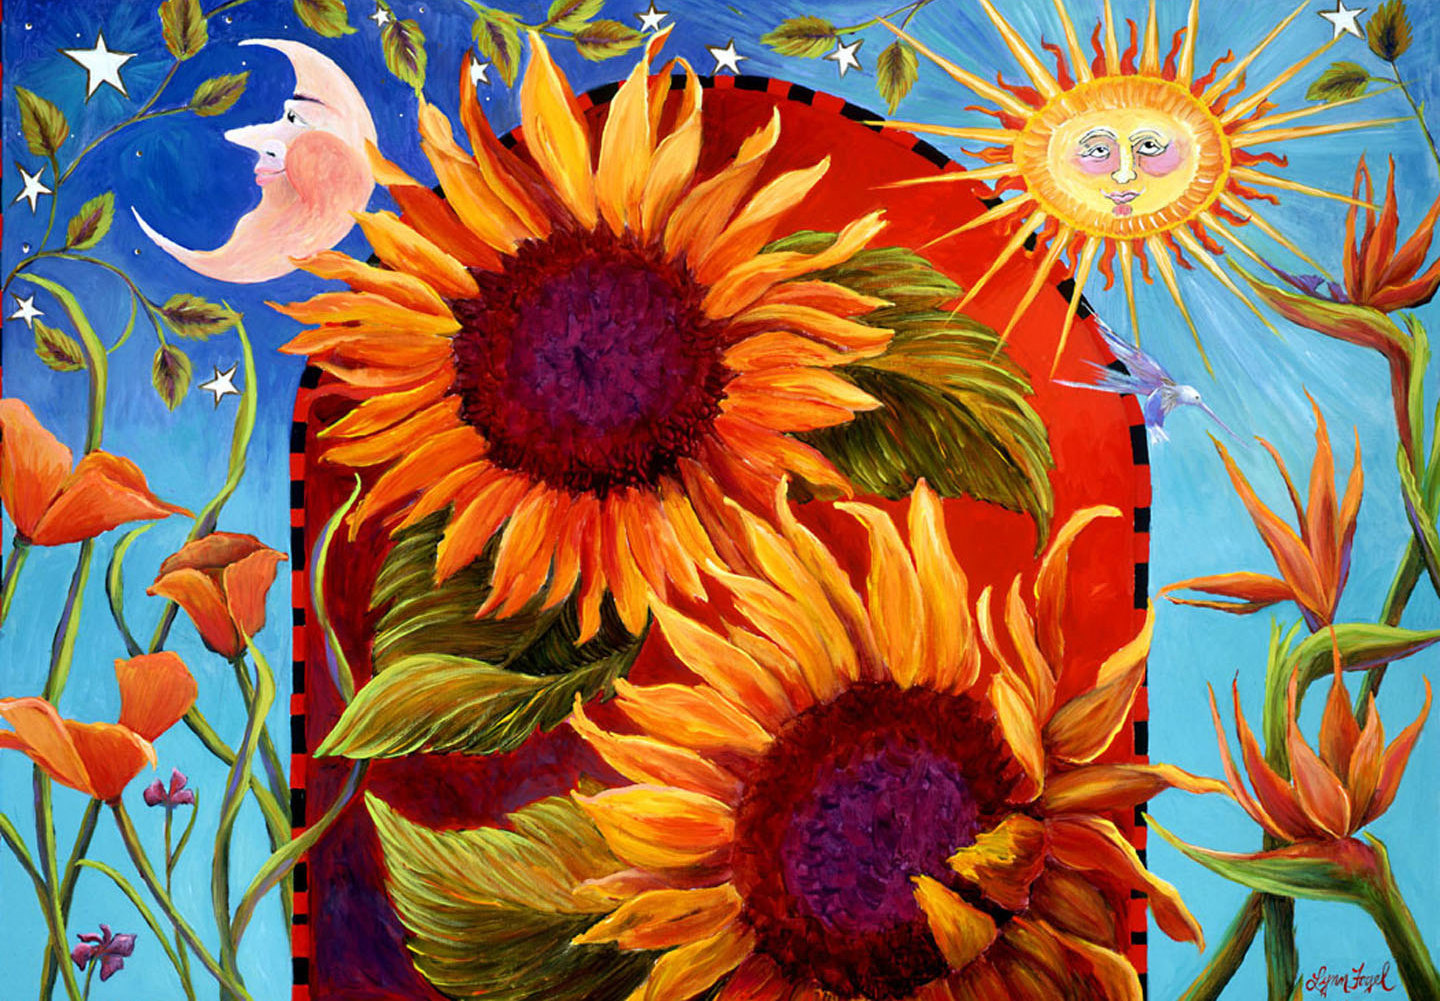 Wonderful Artist, LynnFogel's painting inspired by the Santa Barbara CA Summer Solstice Parade!